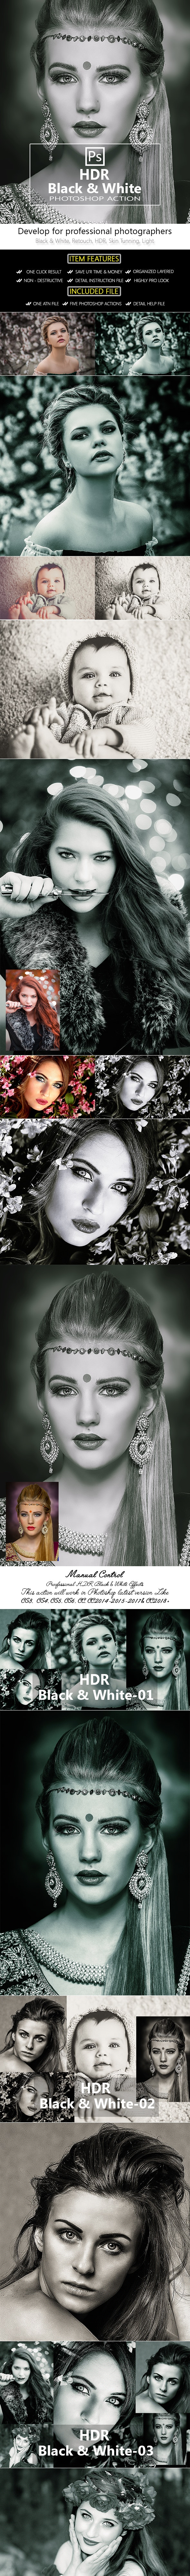 5 HDR Black & White Photoshop Action - Photo Effects Actions